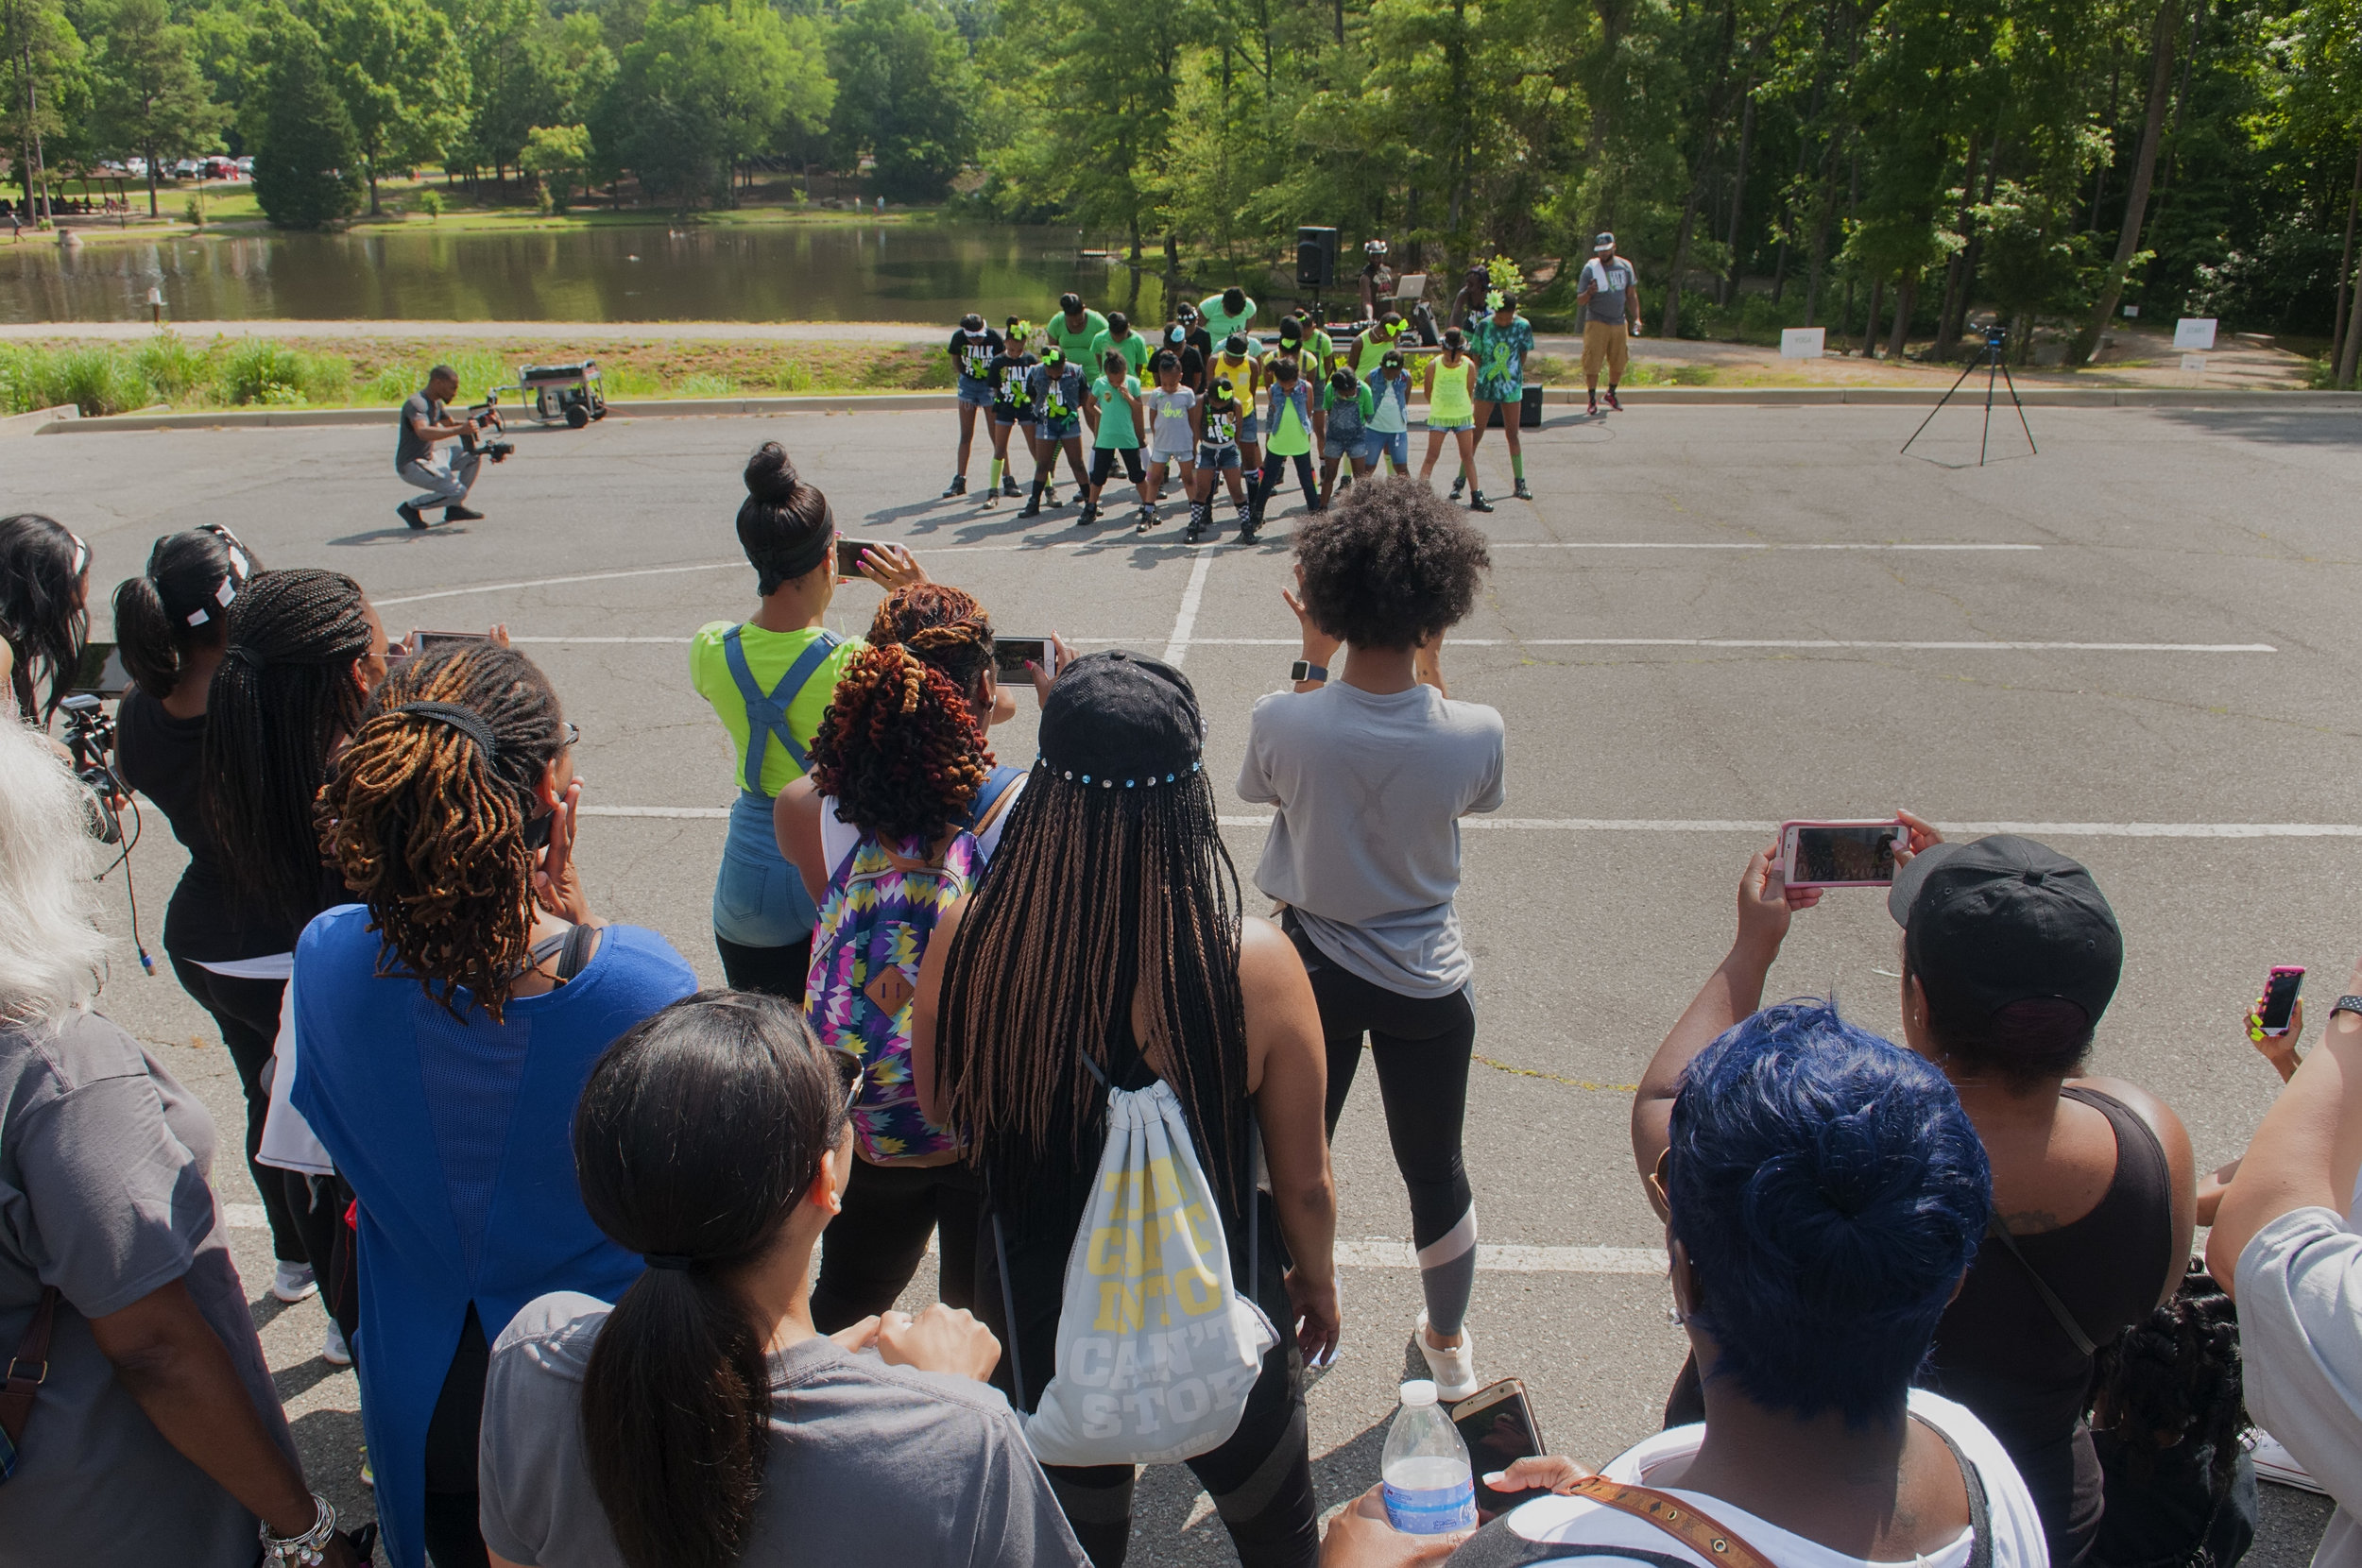 2nd Annual Let's Talk About It Mental Health Awareness Walk @ Park Rd Park 5-20-17 by Jon Strayhorn 088.jpg